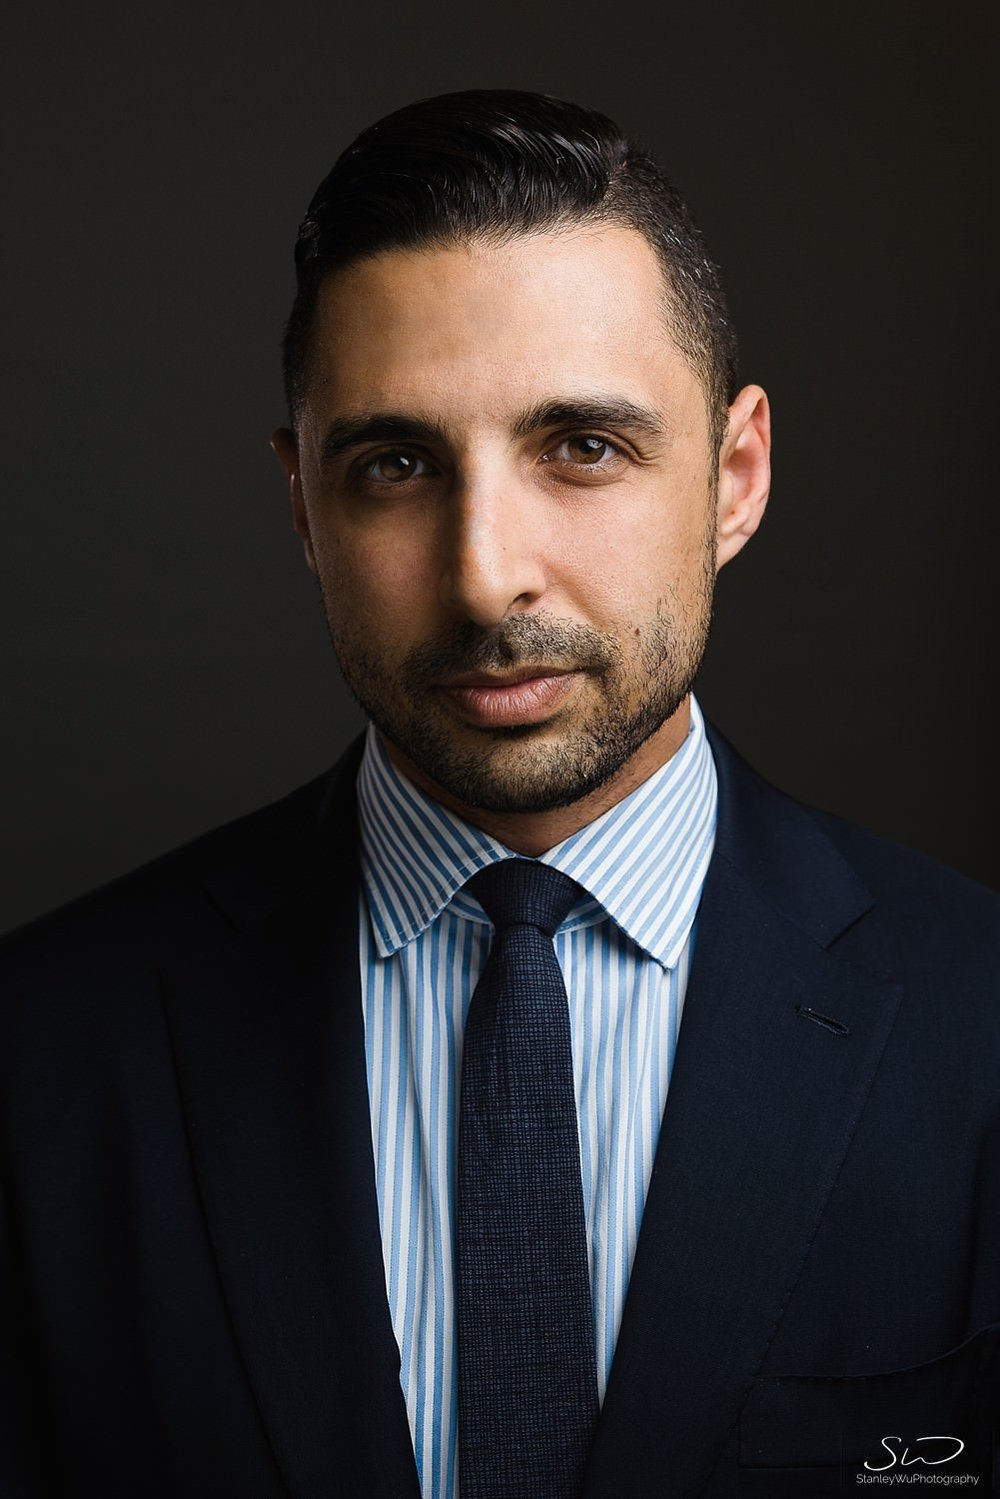 los-angeles-corporate-lawyer-headshot_0003.jpg